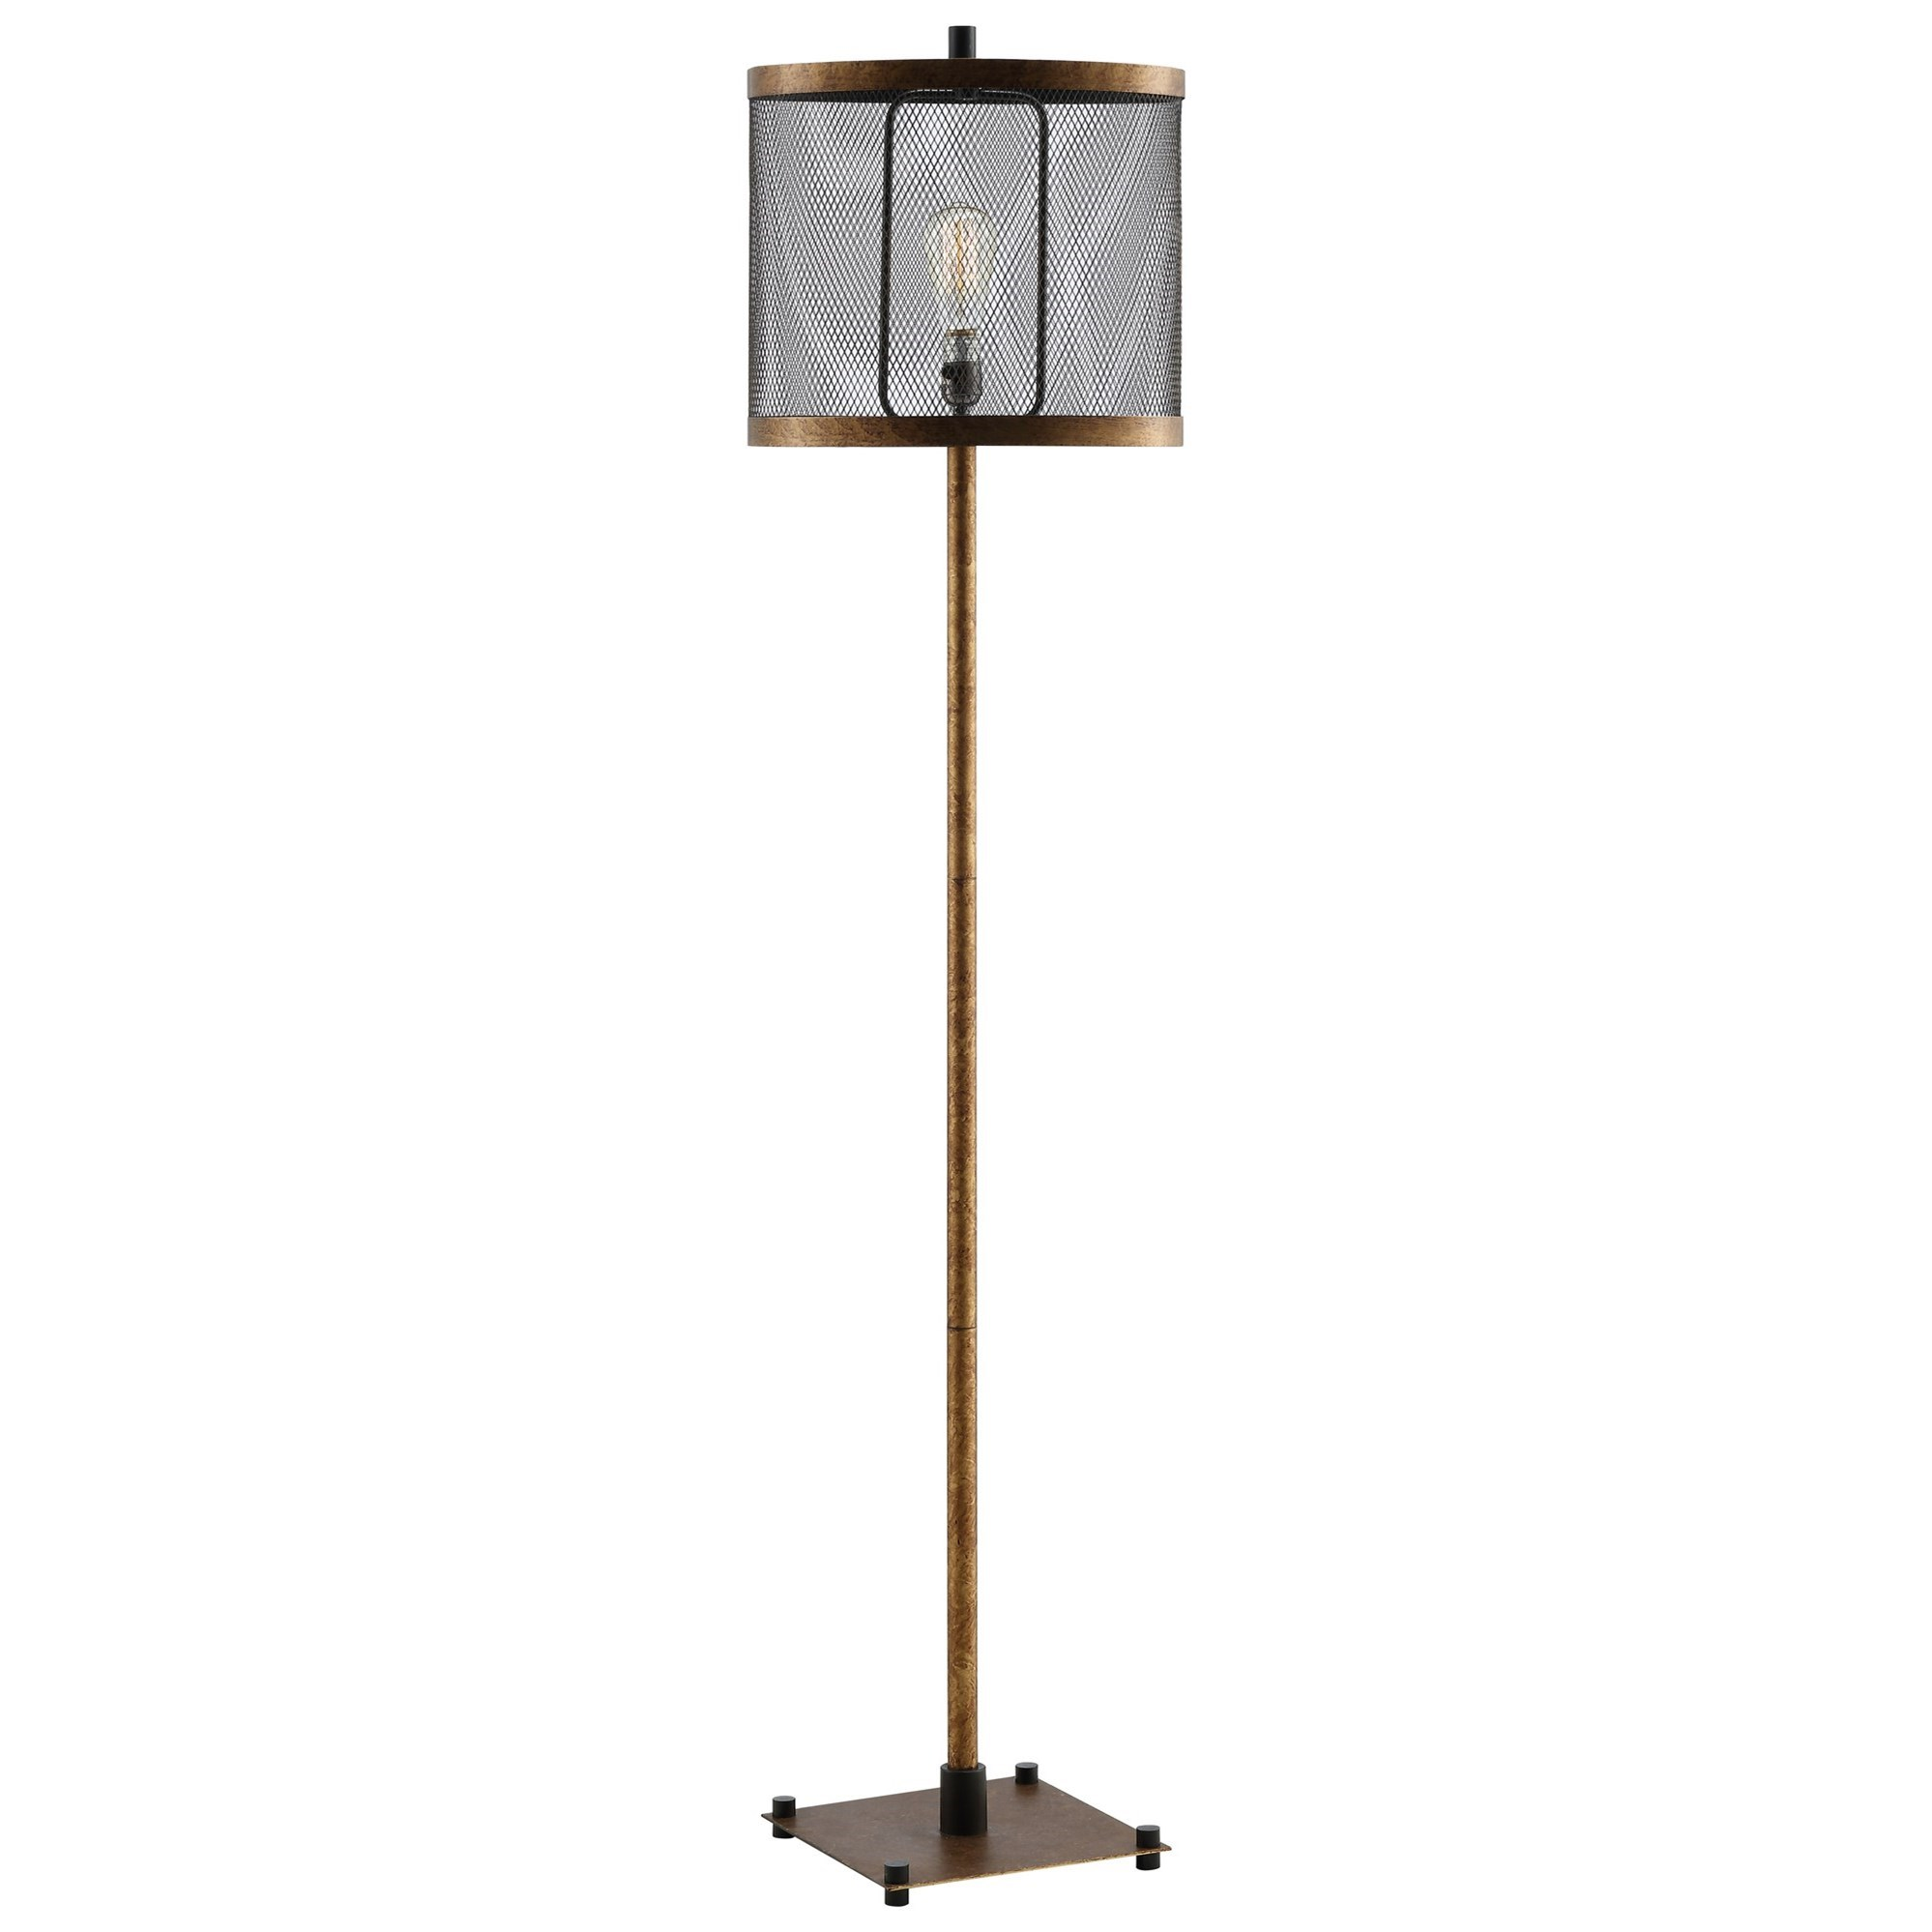 Lighting Webster Floor Lamp by Crestview Collection at Rife's Home Furniture